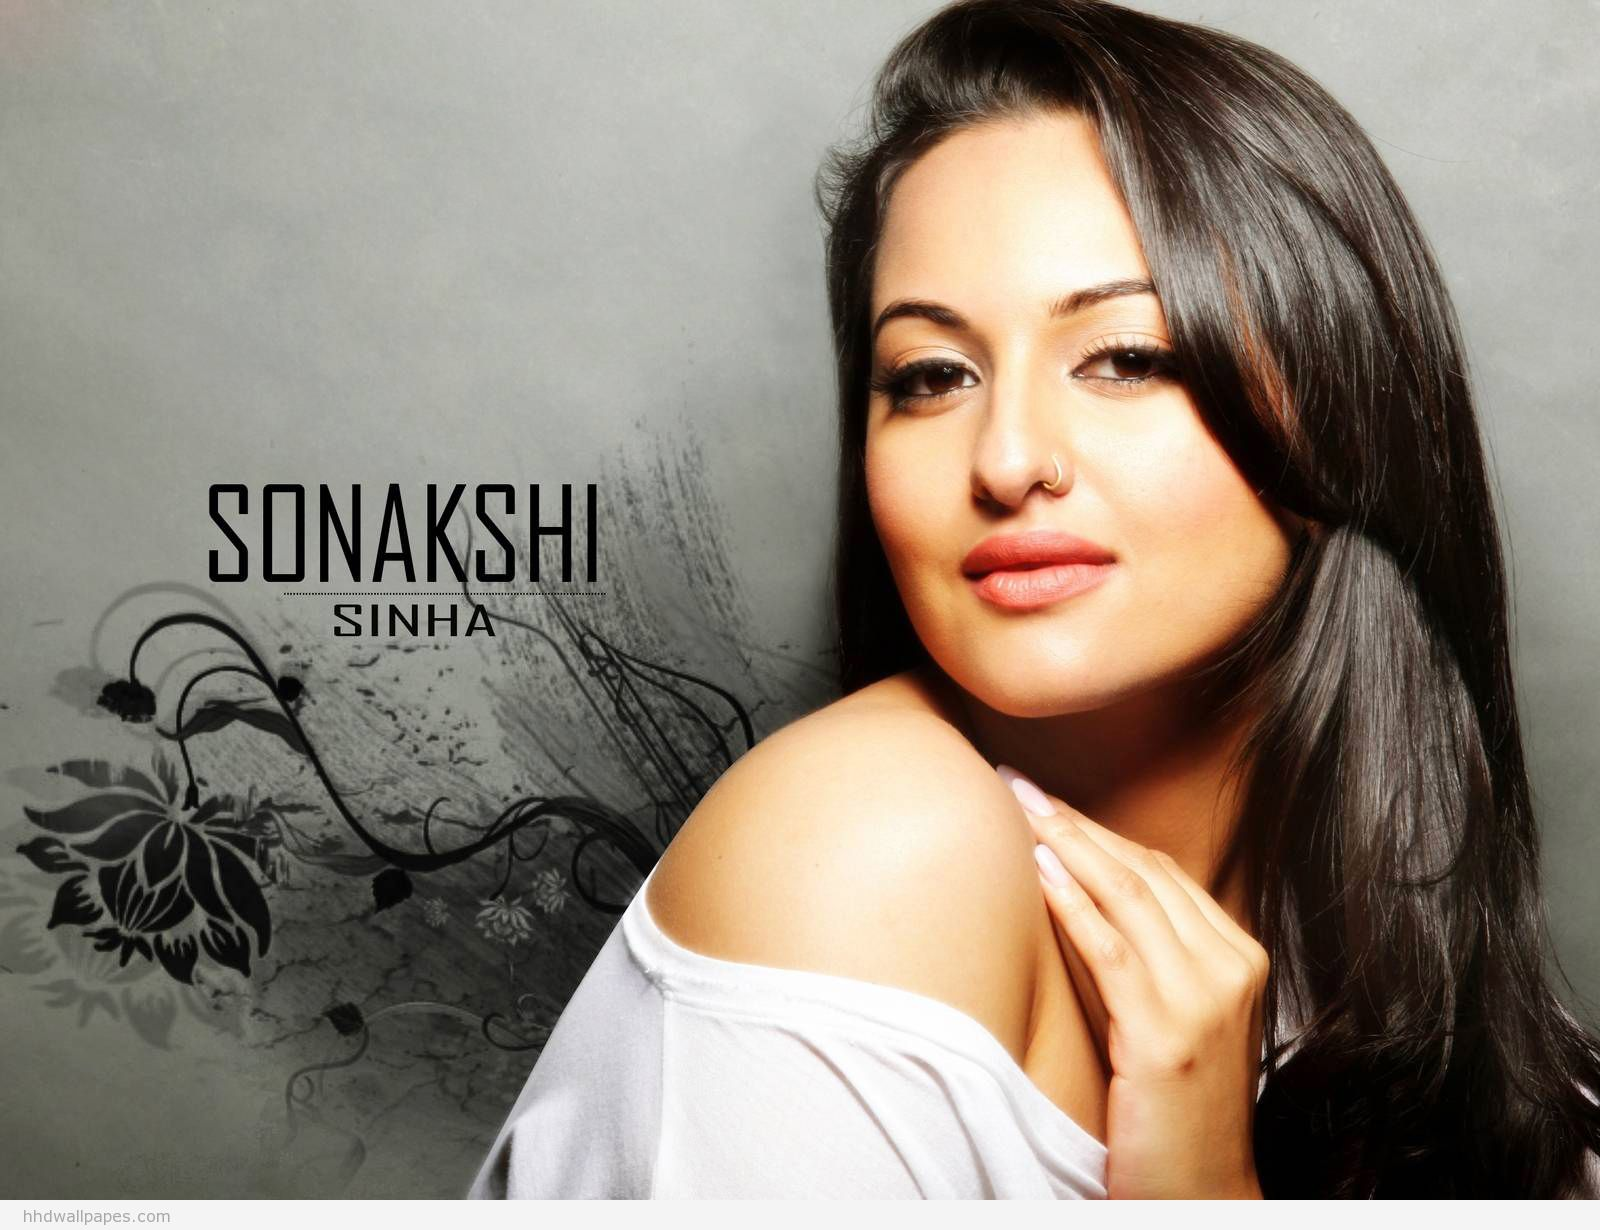 New Wallpapers 2015 Sonakshi Sinha Wallpapers 2015 1600x1230